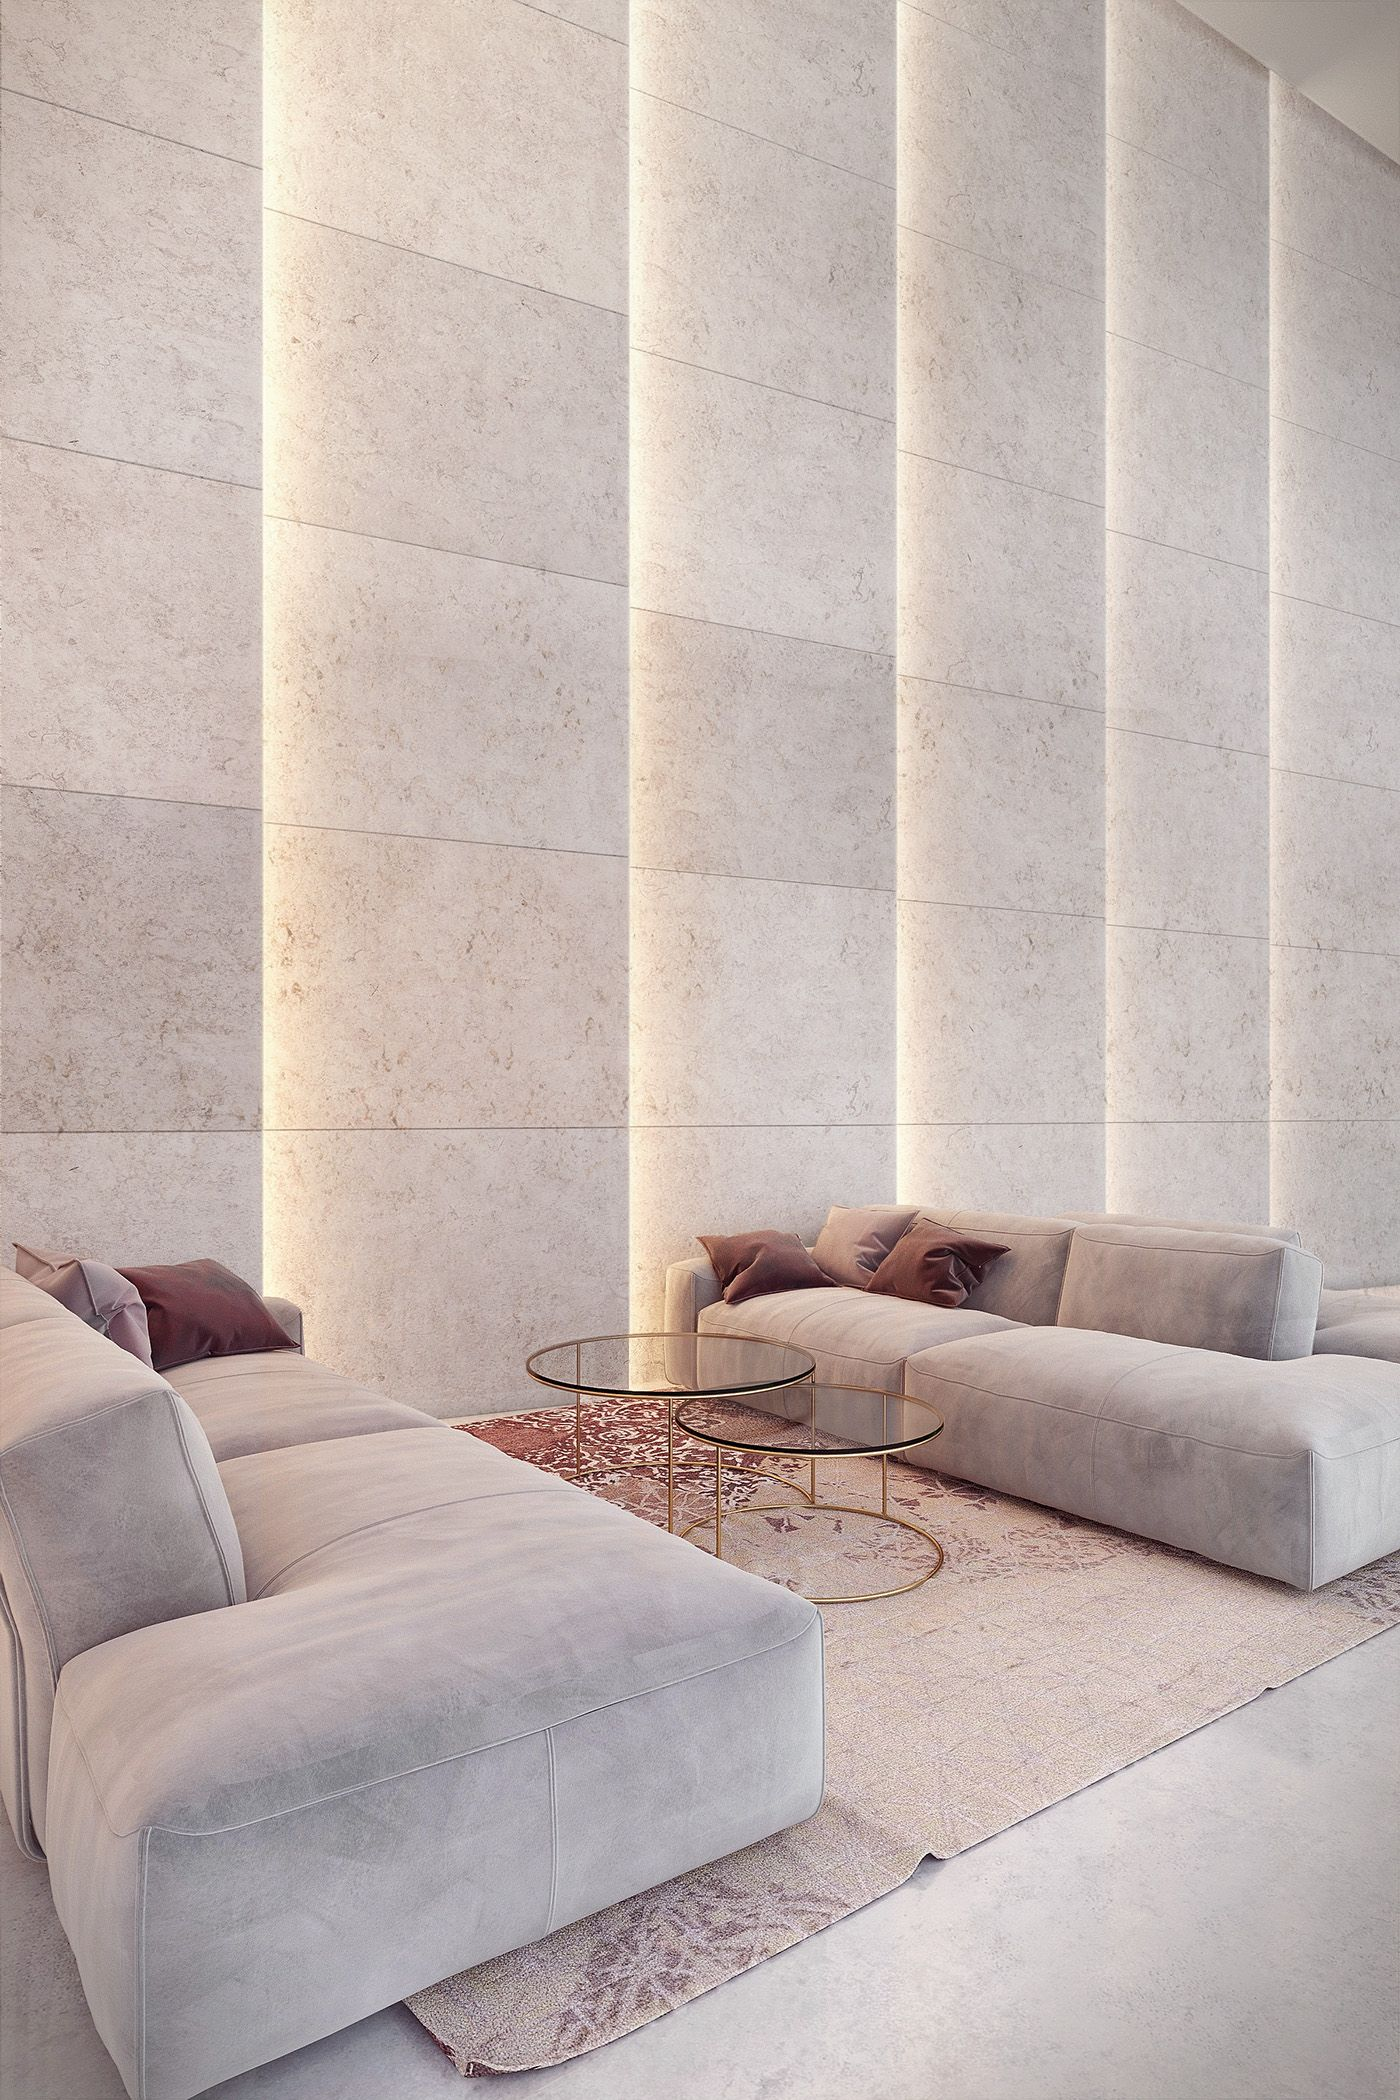 light in architecture - travertine wall on behance | hotel